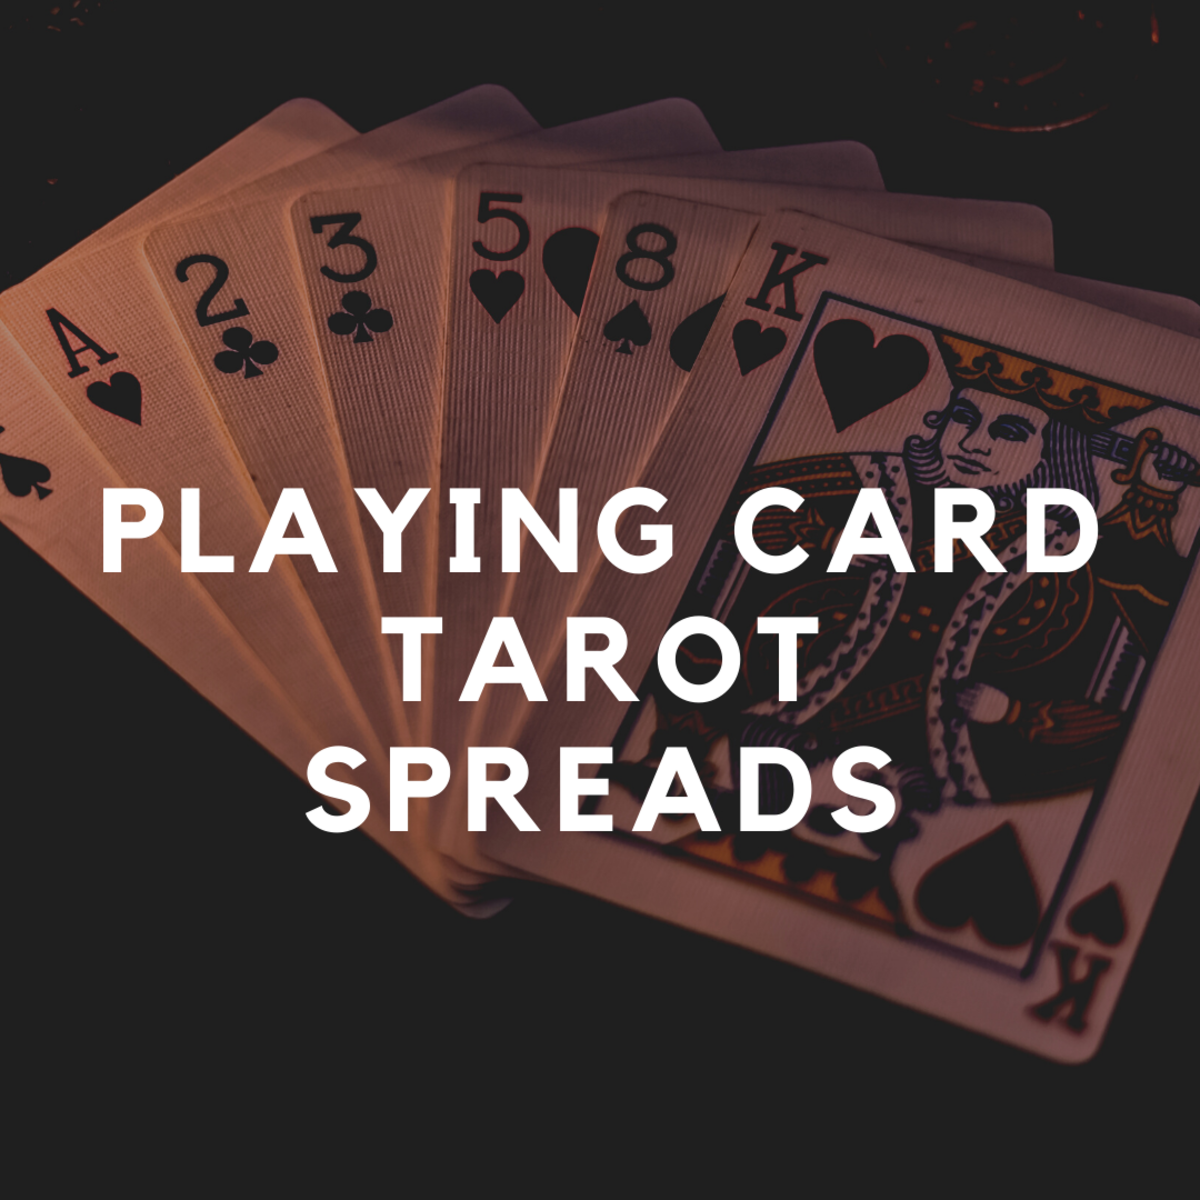 Playing Card Tarot Spreads